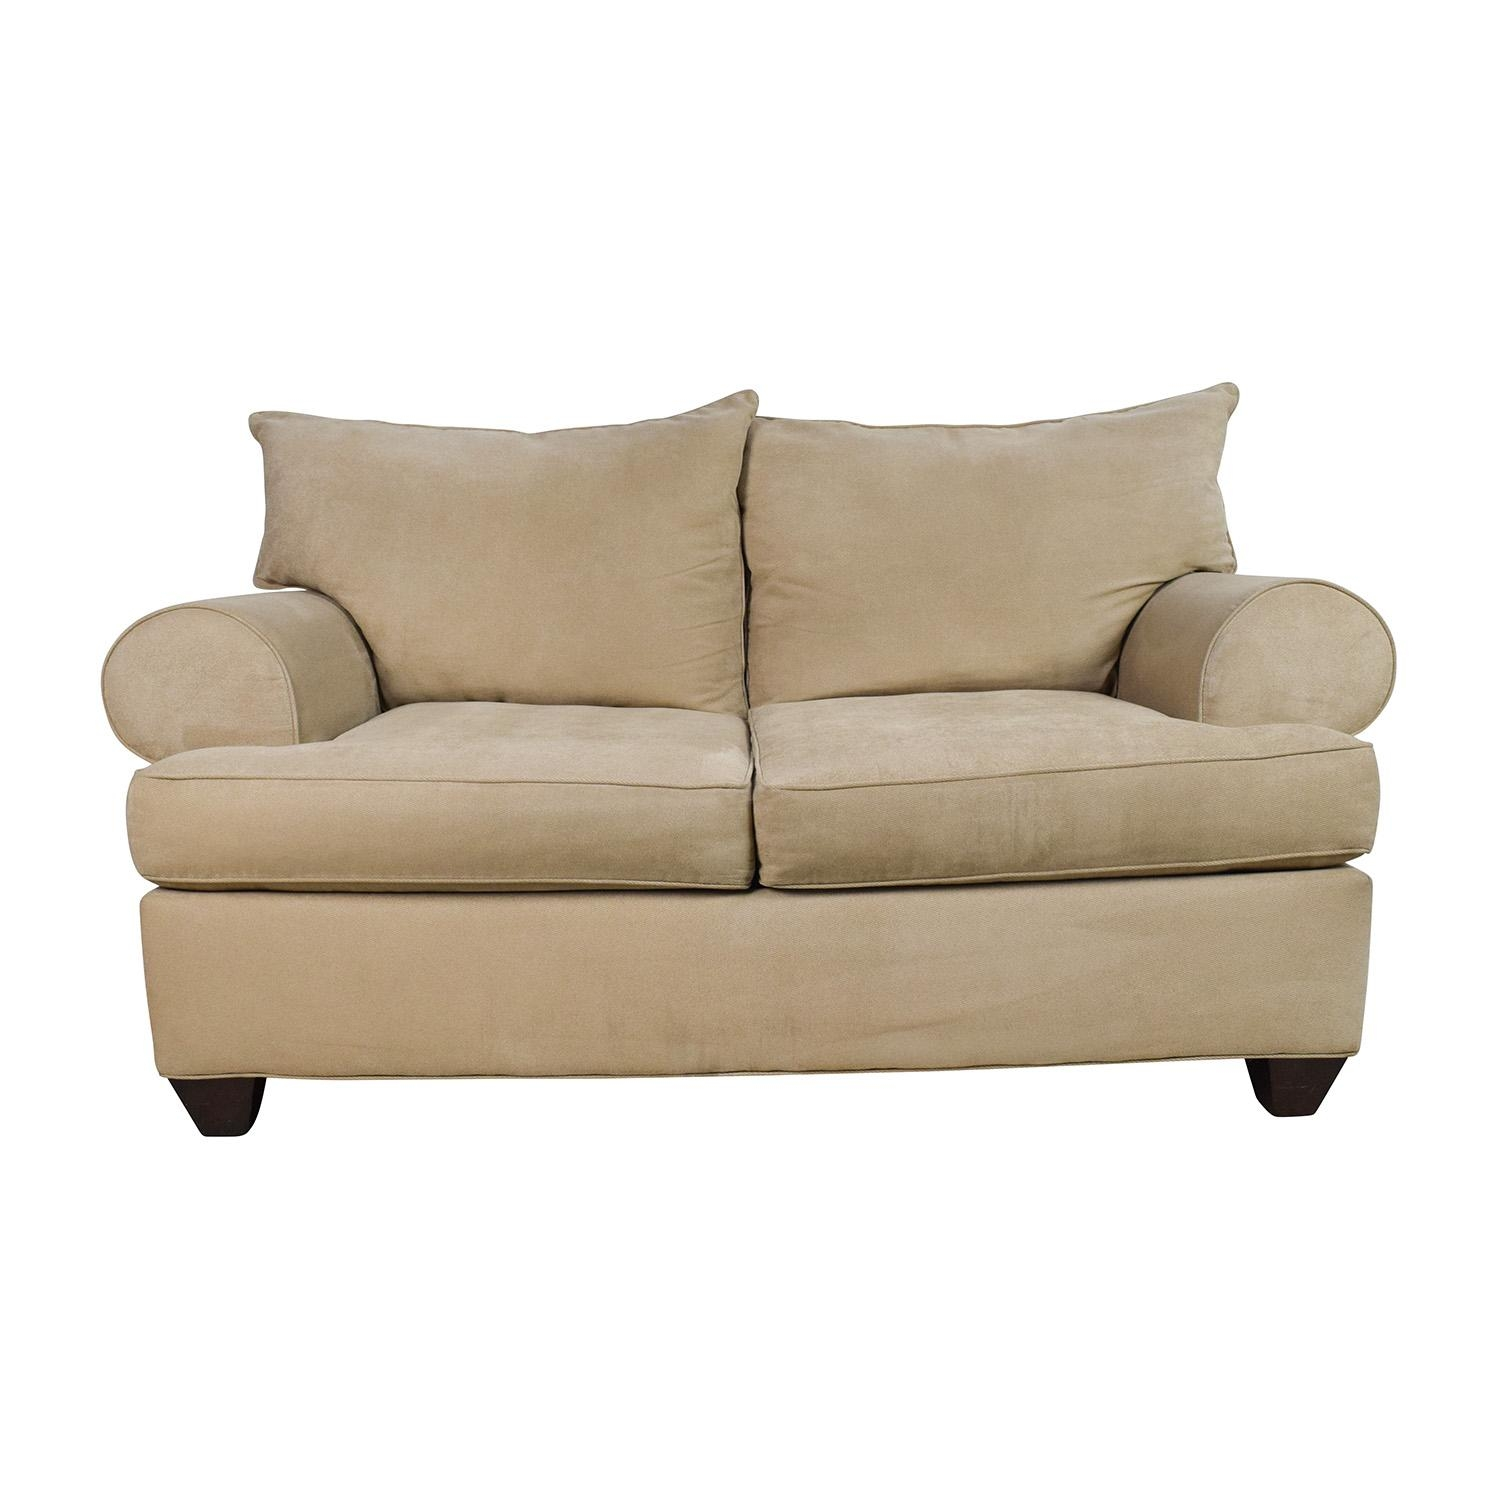 Off White Loveseat (Image 17 of 20)